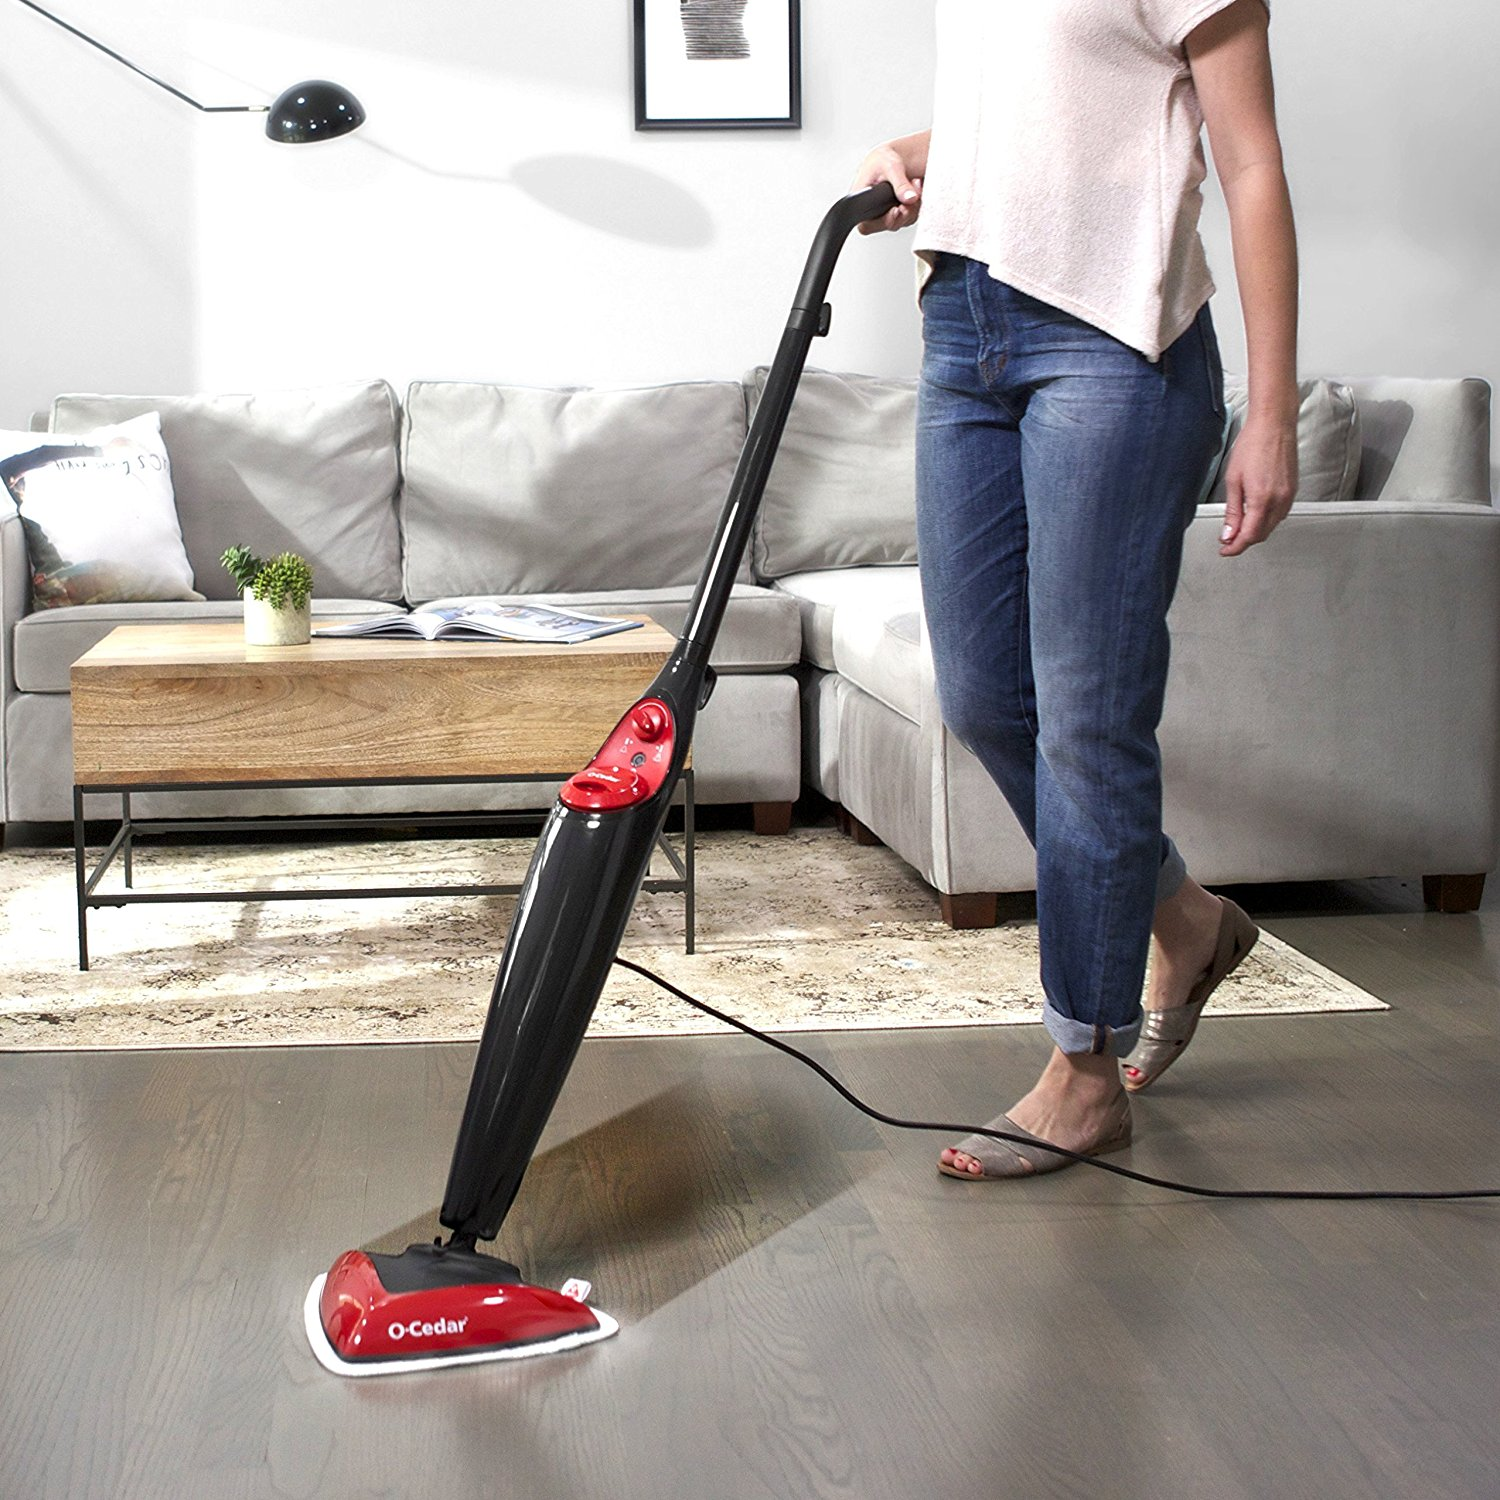 O-Cedar Best Steam Mops for Hardwood Floors